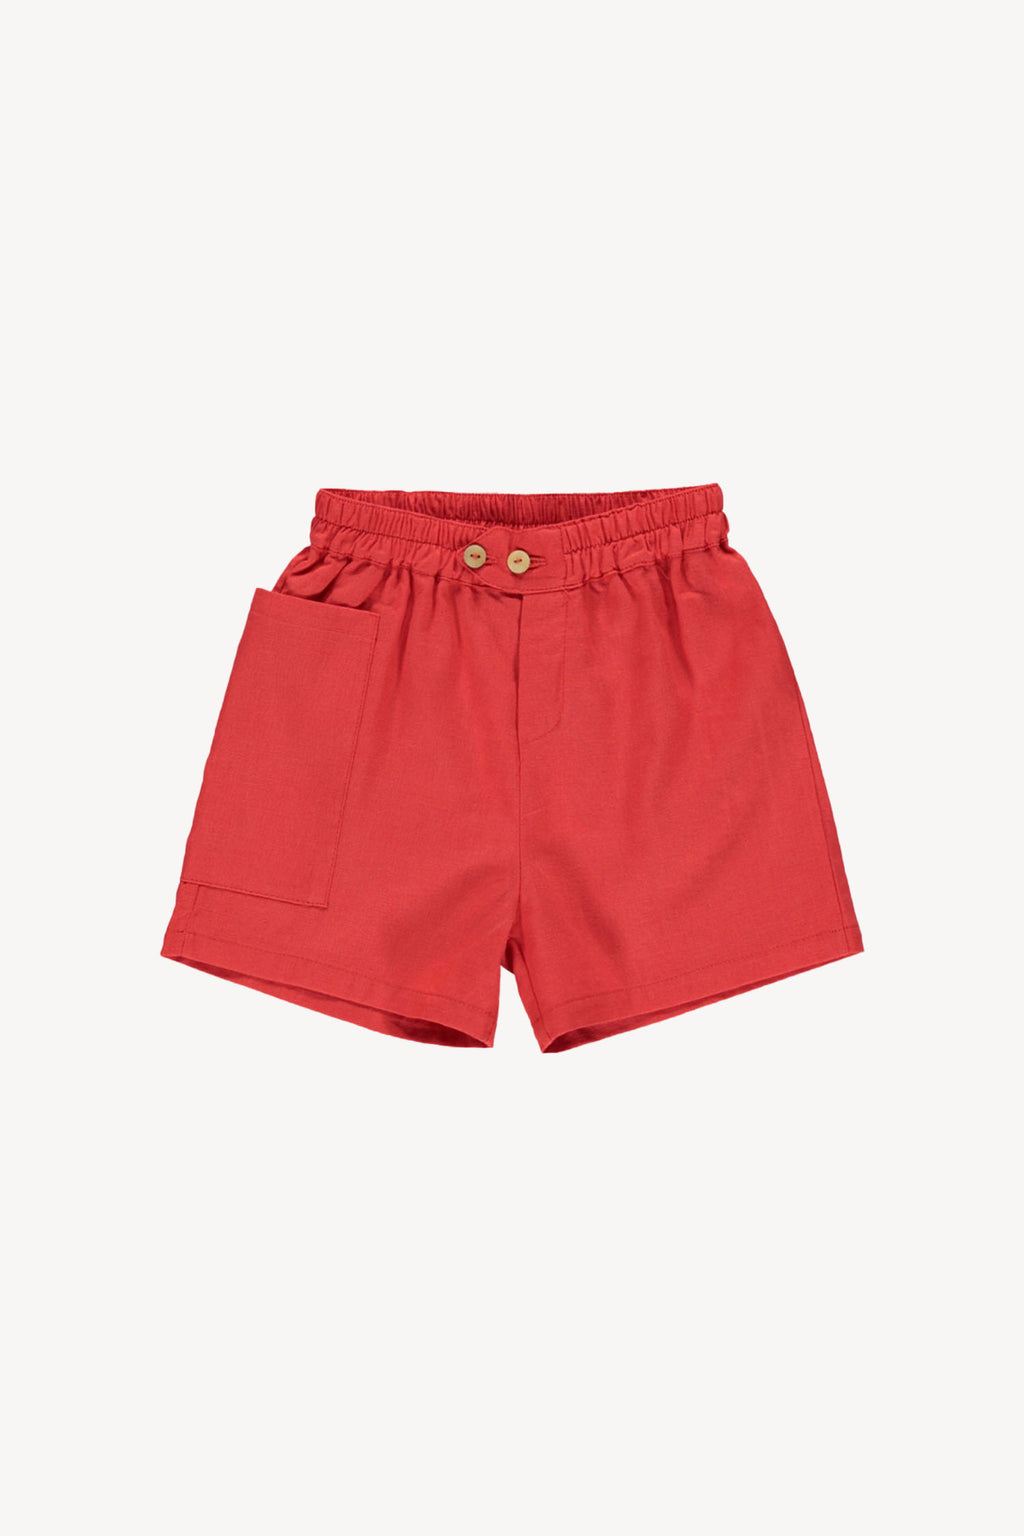 Fin and Vince - High-Waisted Short (Brick Red) - Only 4/5